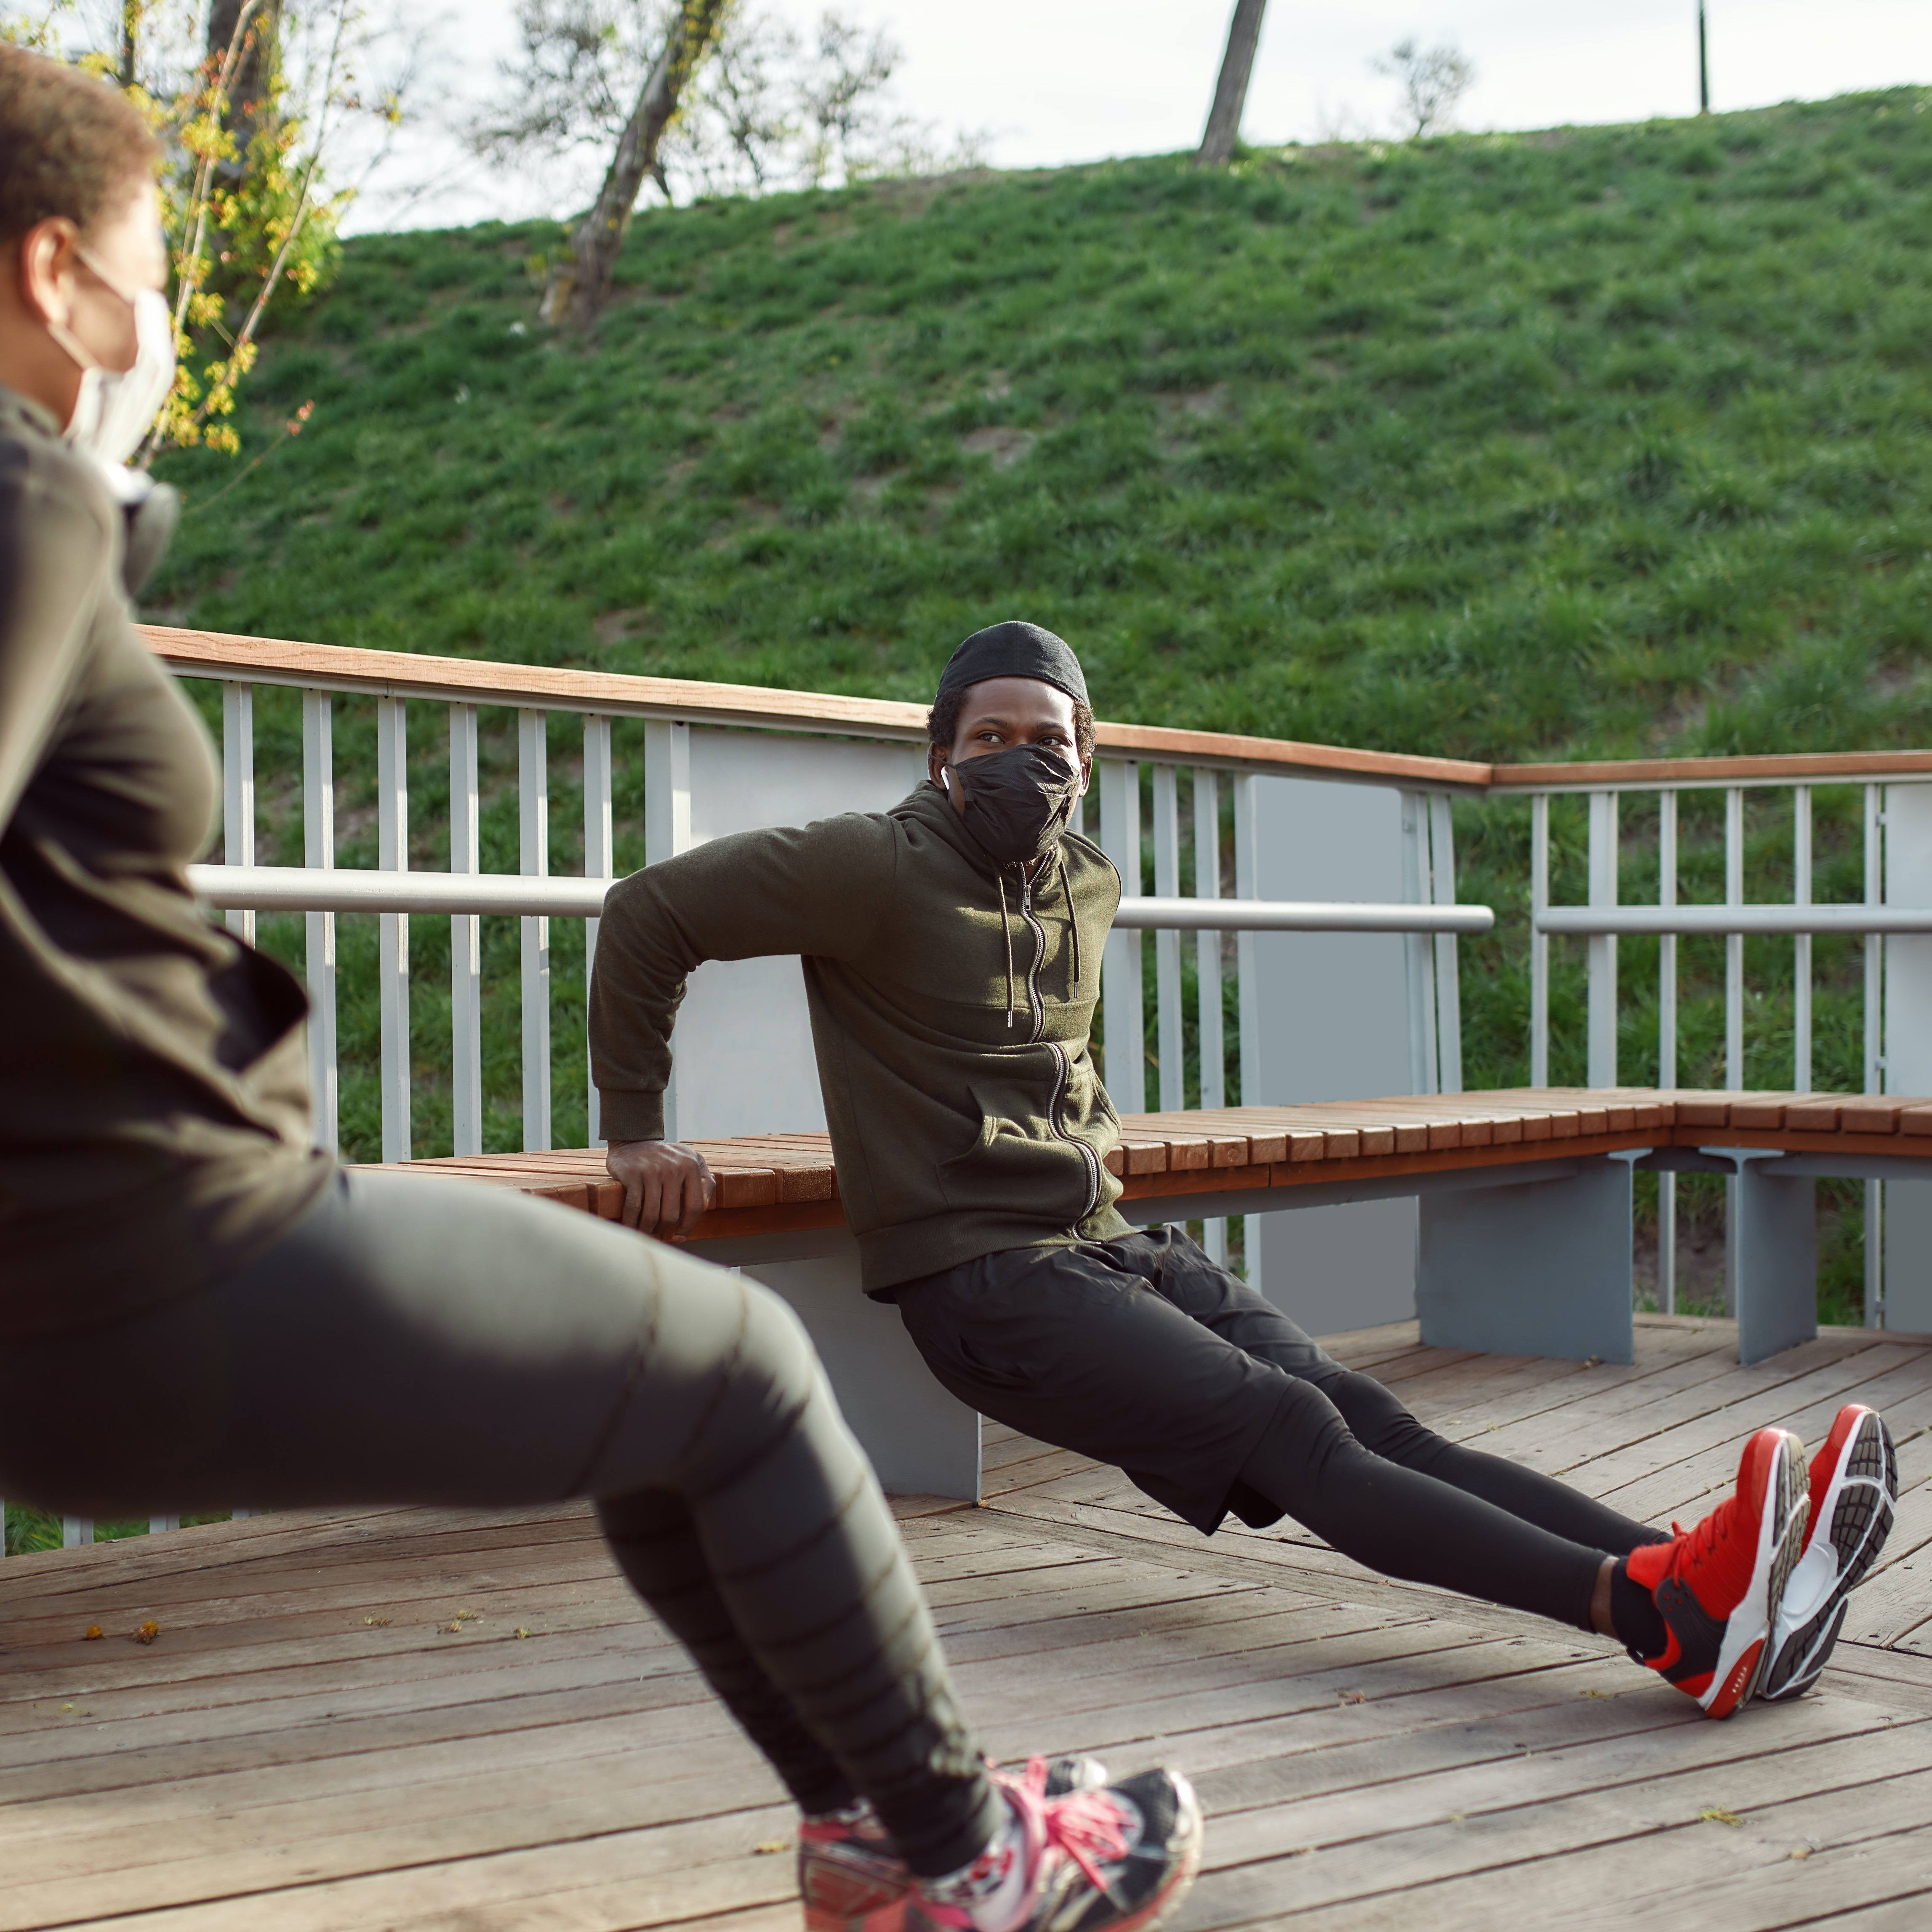 Two people working out while wearing masks